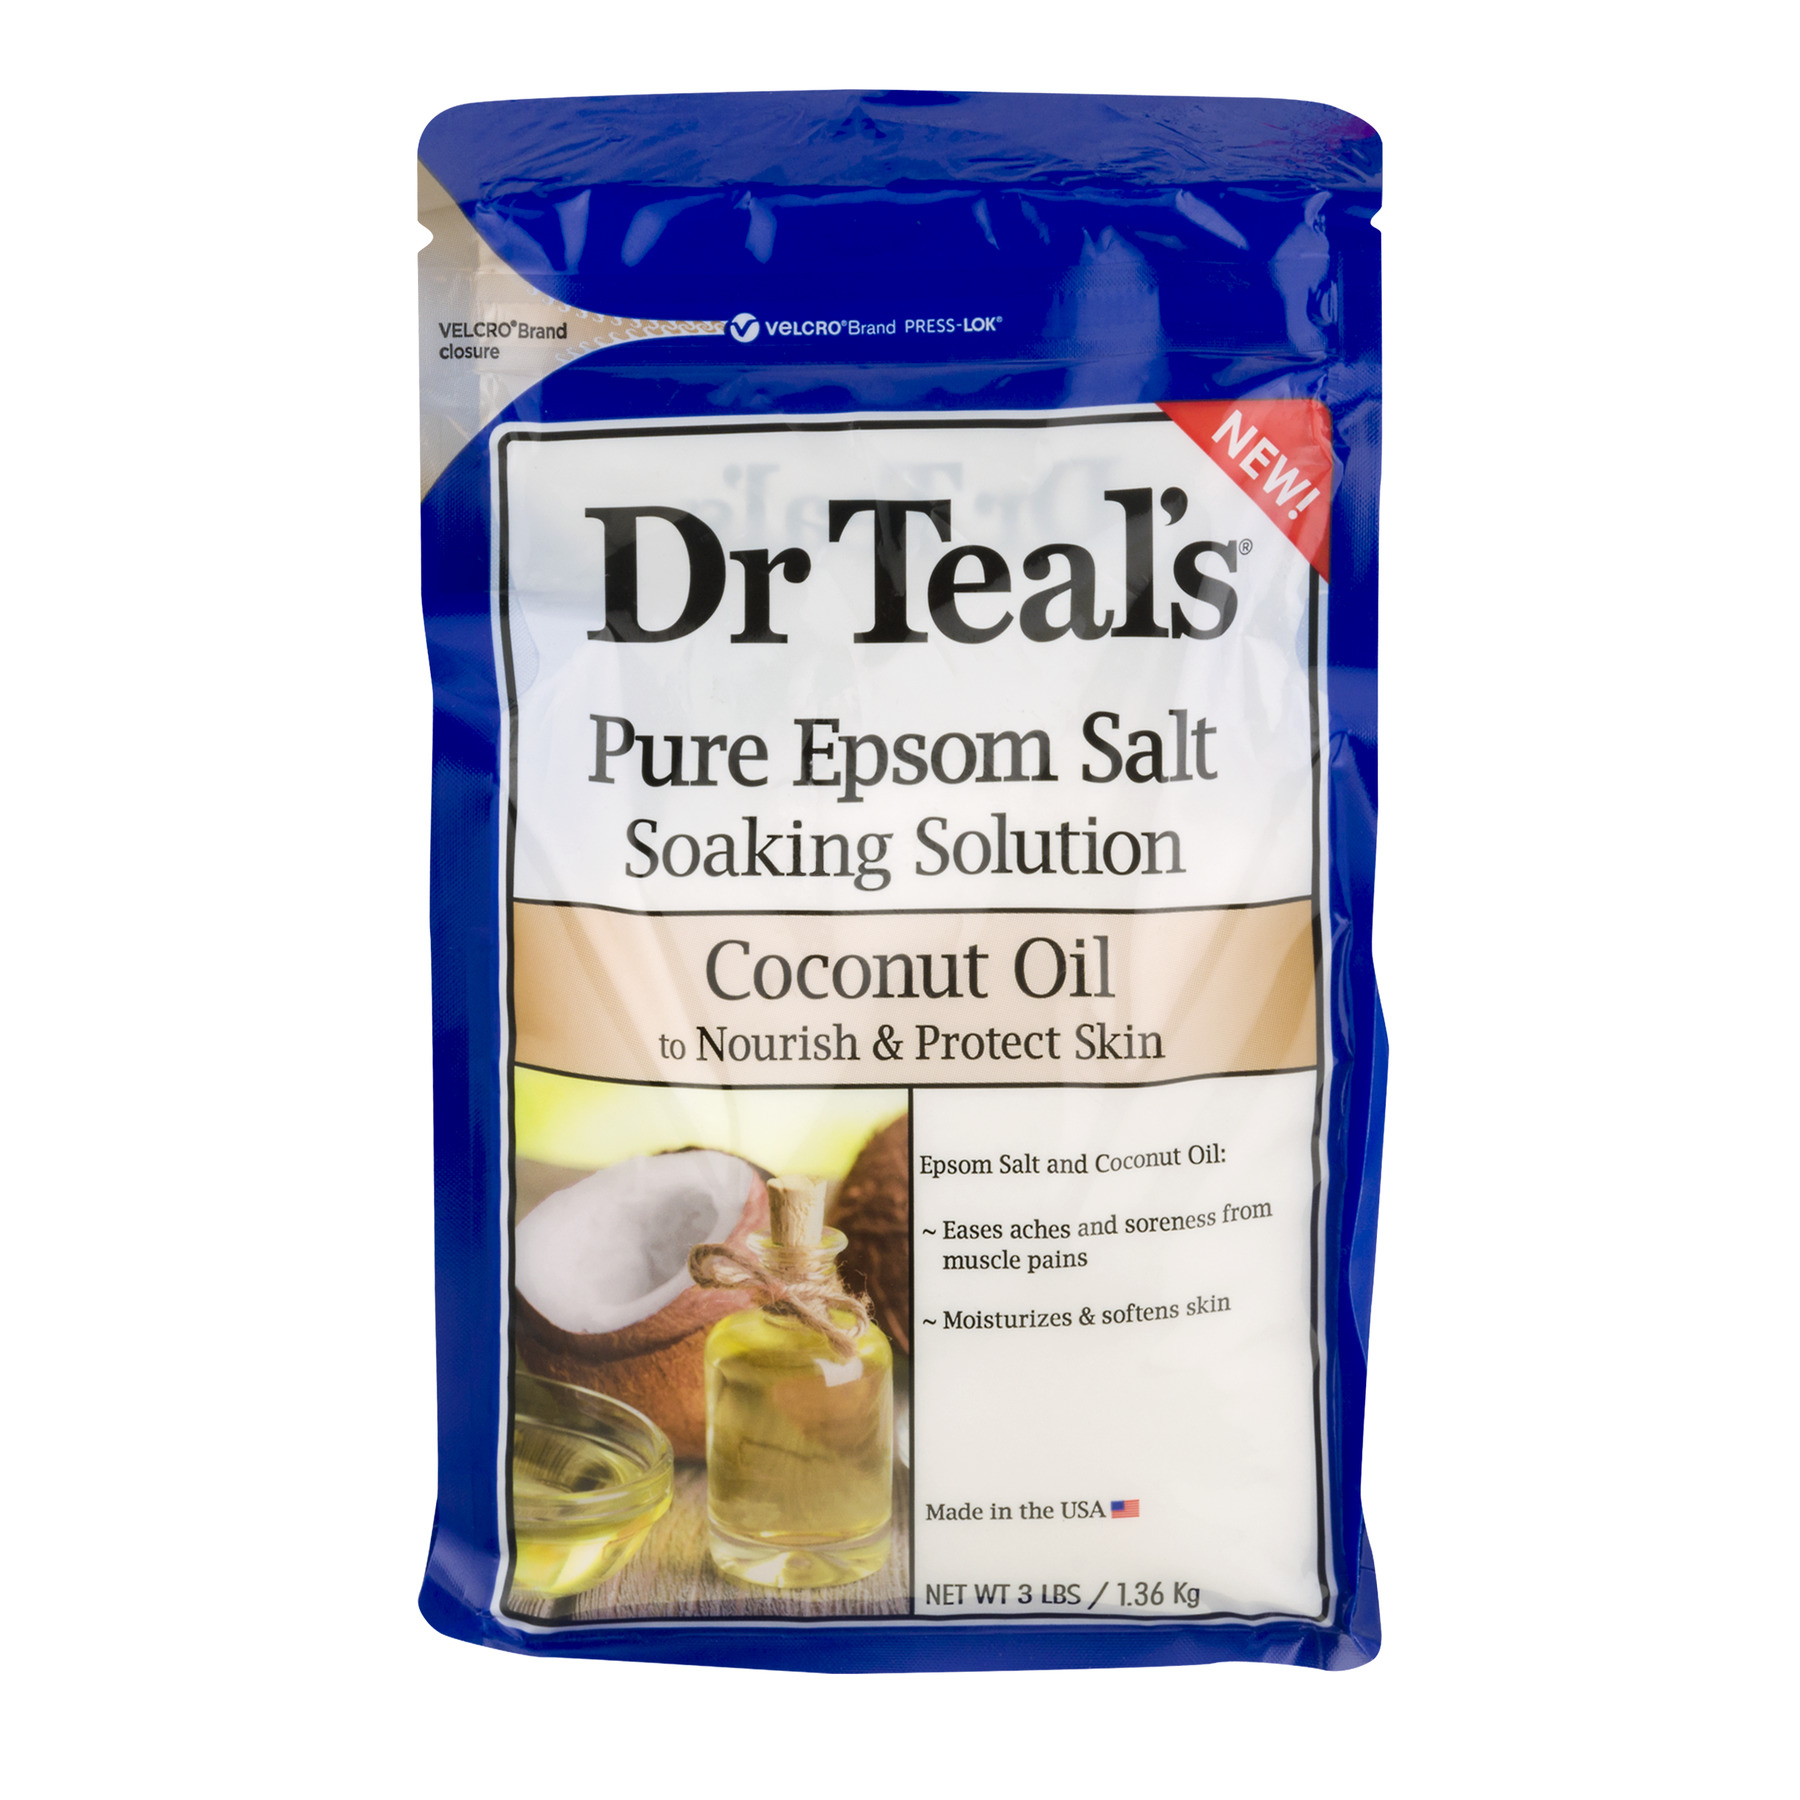 Dr Teal's Pure Epsom Salt Soaking Solution with Coconut Oil, 3 lbs